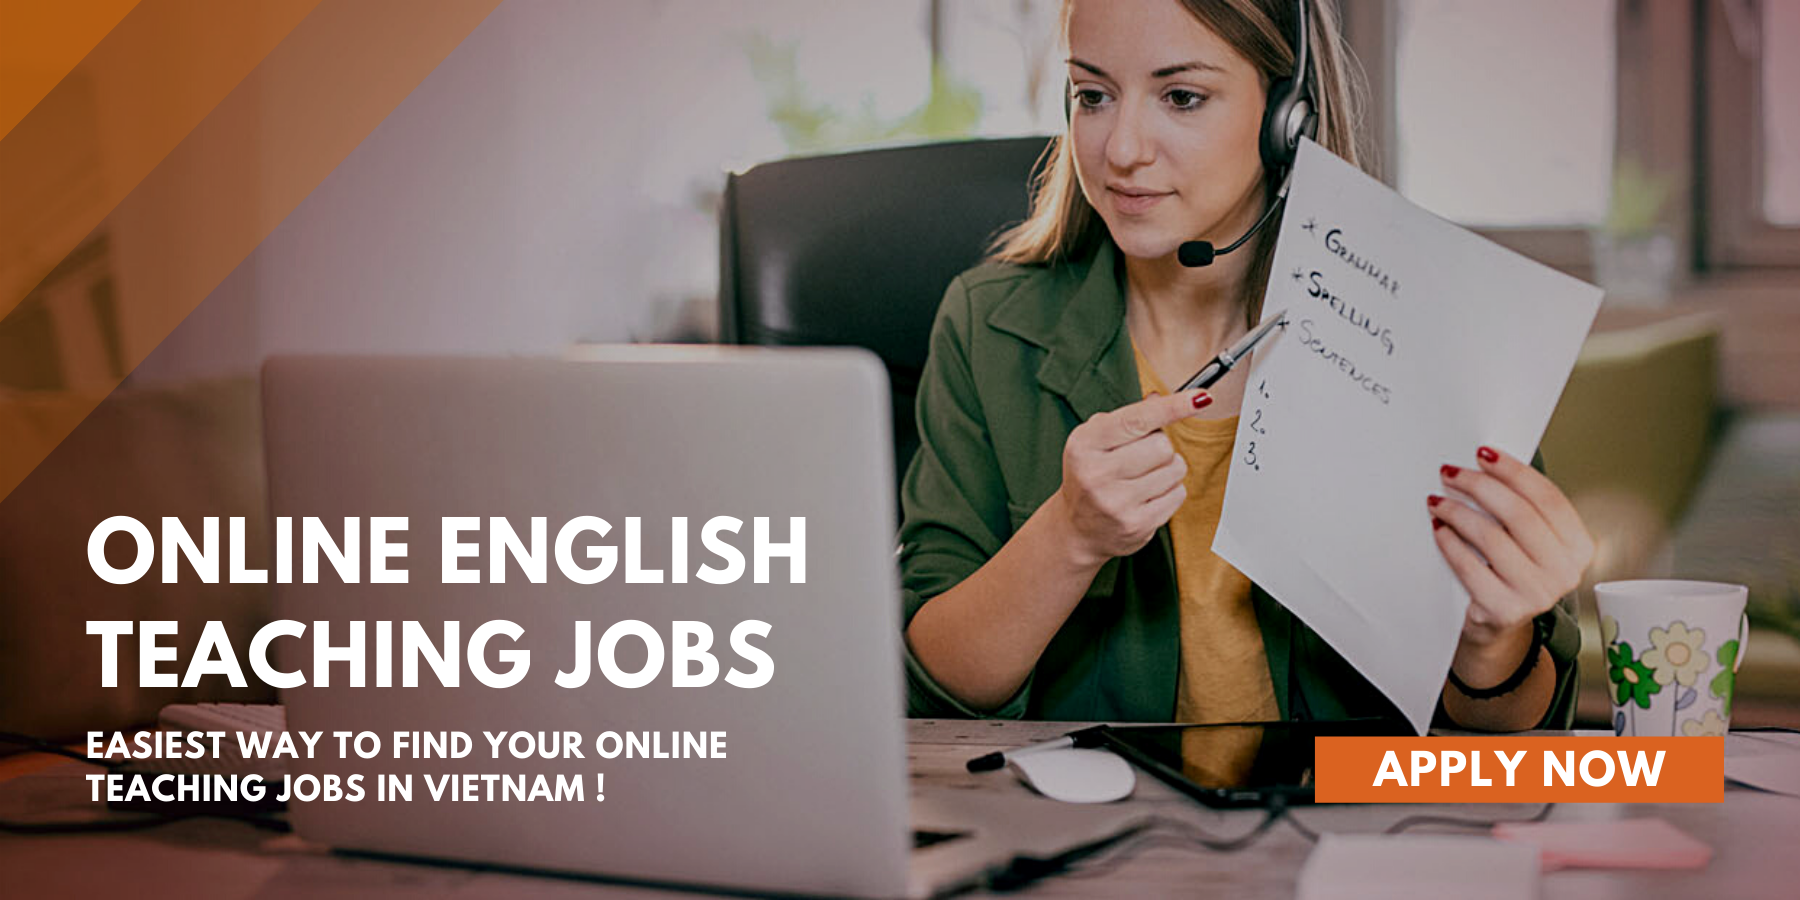 Online English Teaching Jobs In Vietnam